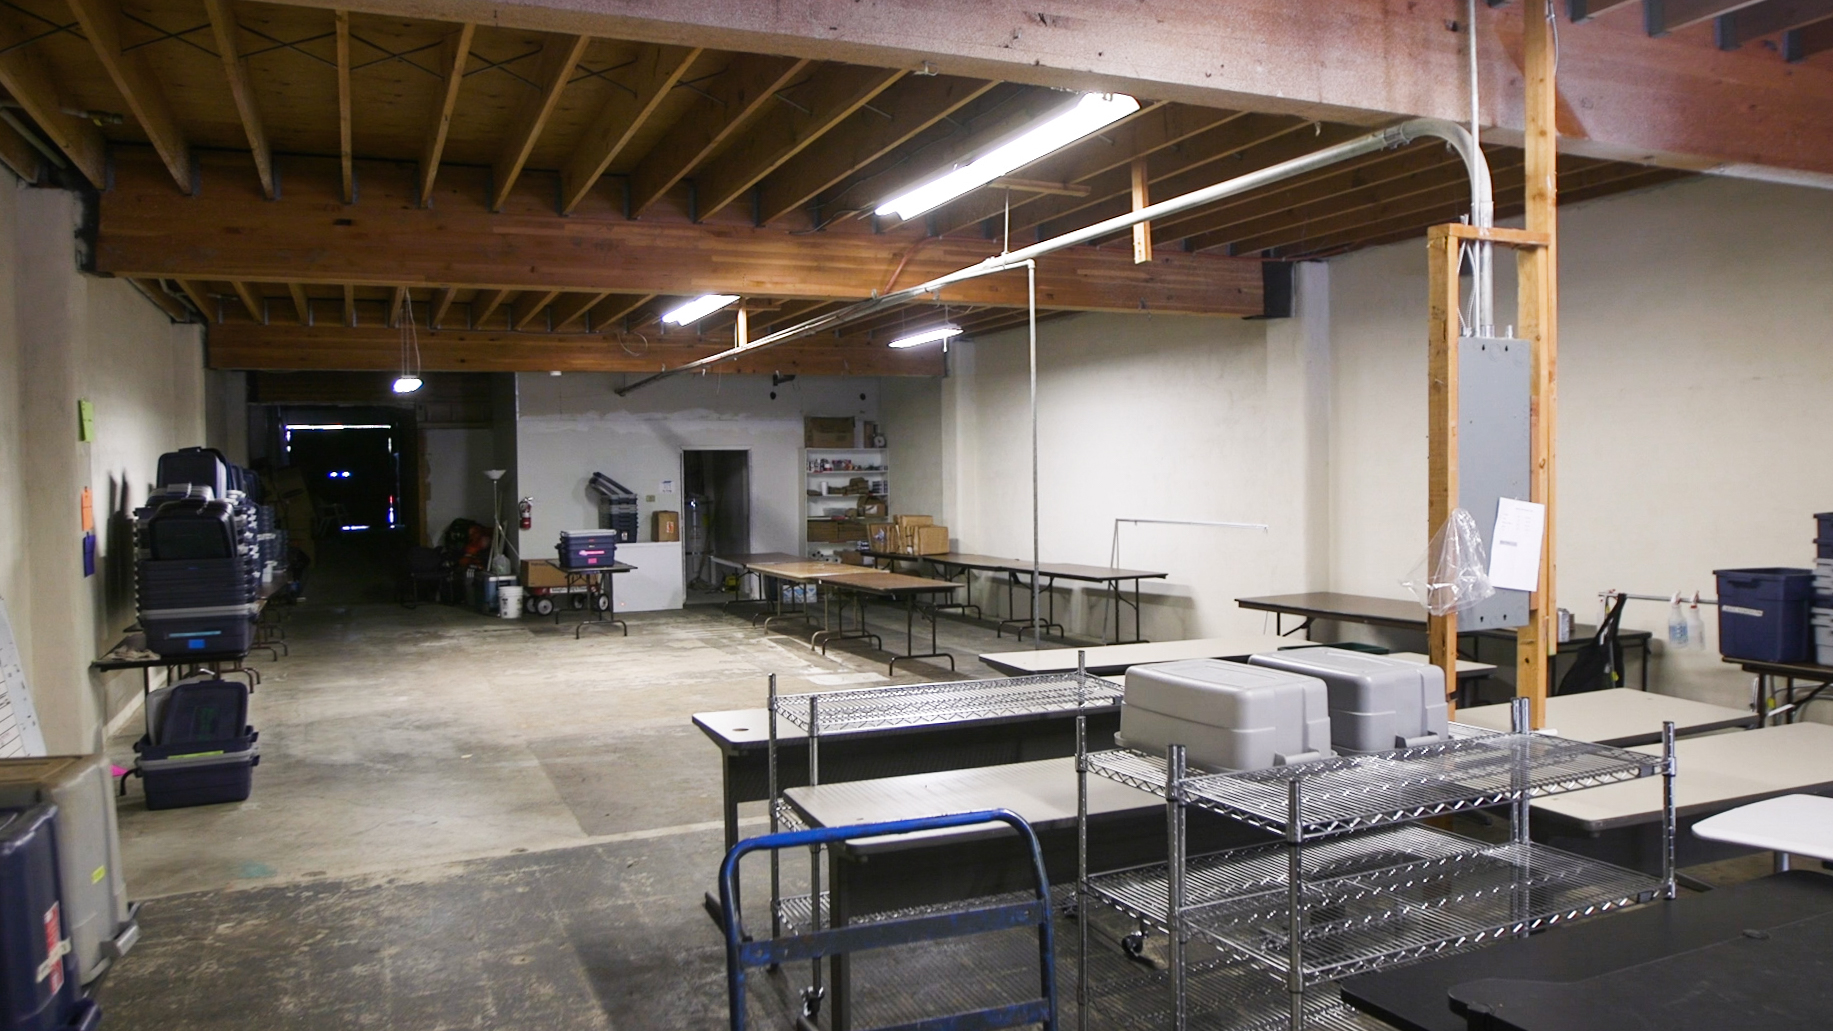 Space in the Adelante Mujeres building where six Early Childhood Education classrooms will be constructed.